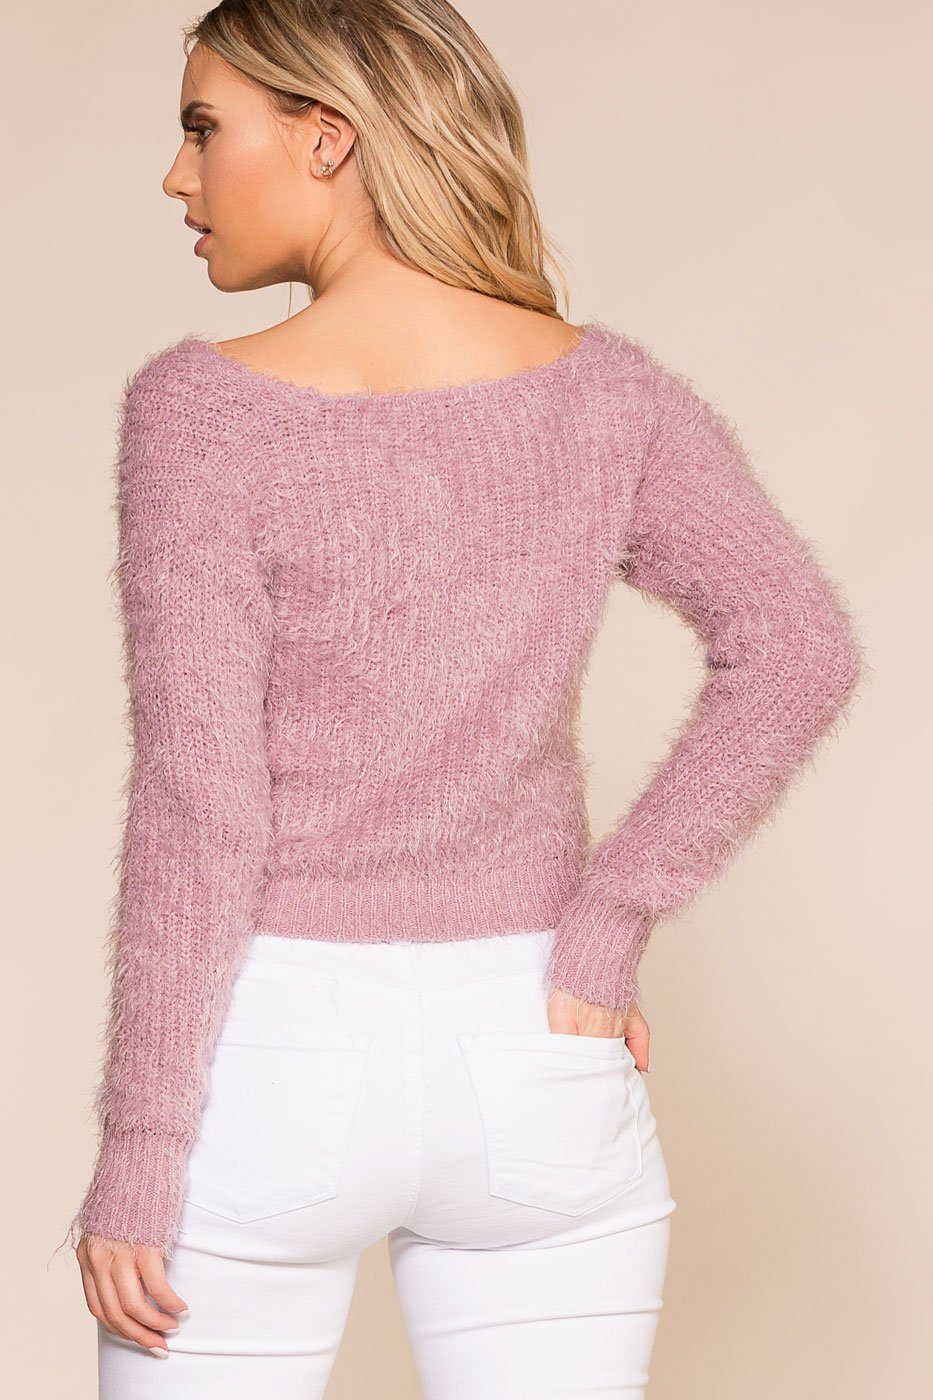 Lavender Fuzzy Button-Up Cardigan Top